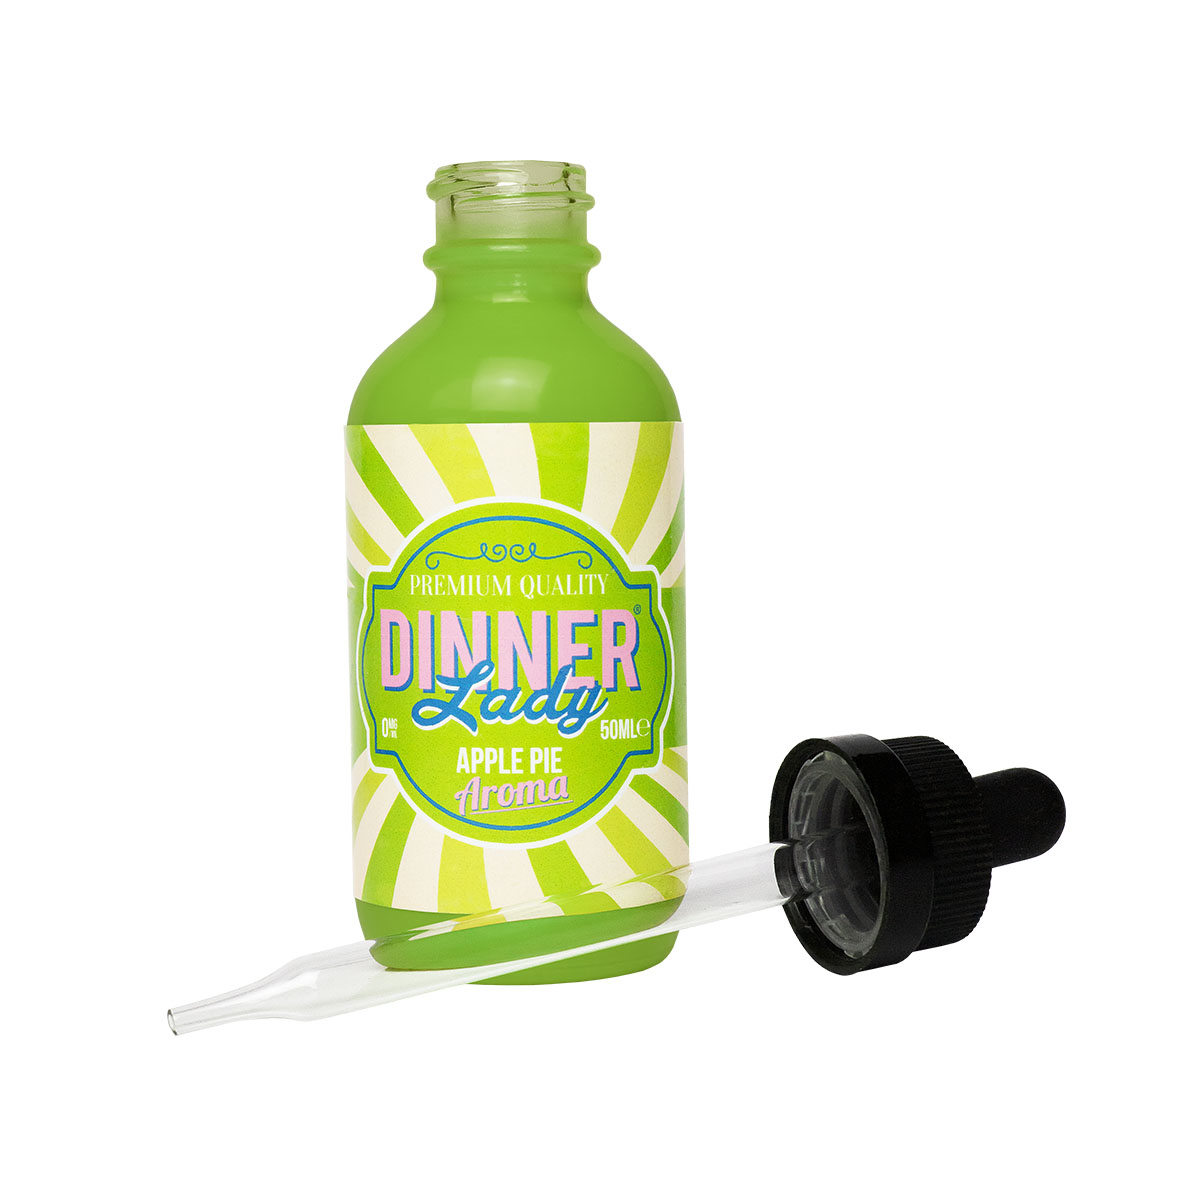 Dinner Lady Apple Pie - Dinner Lady Apple pie 50ml for 60ml